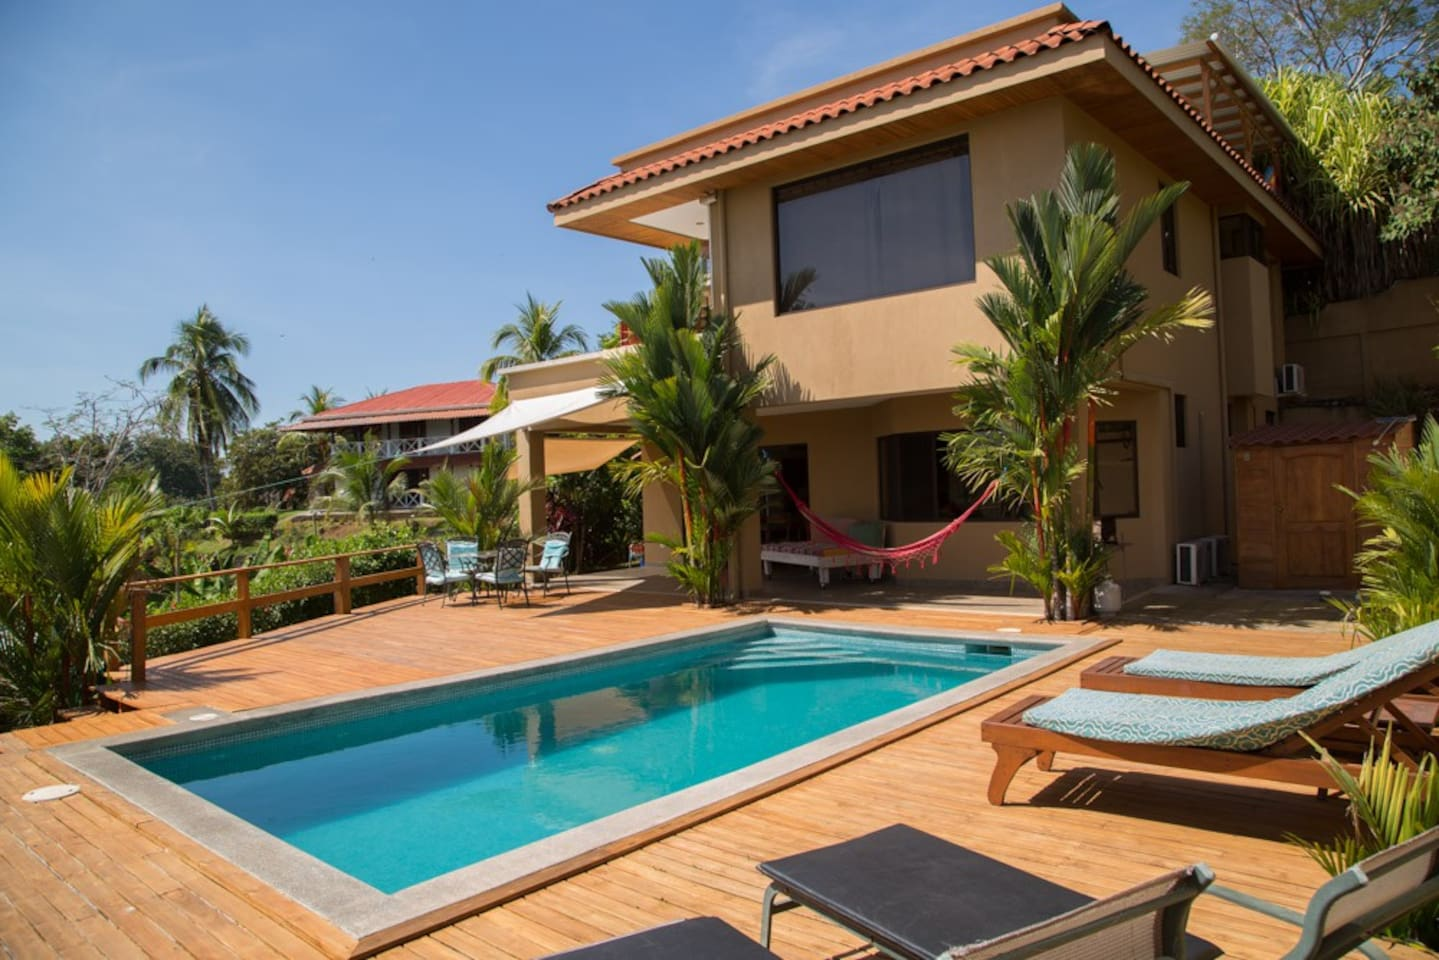 Pool, deck and house